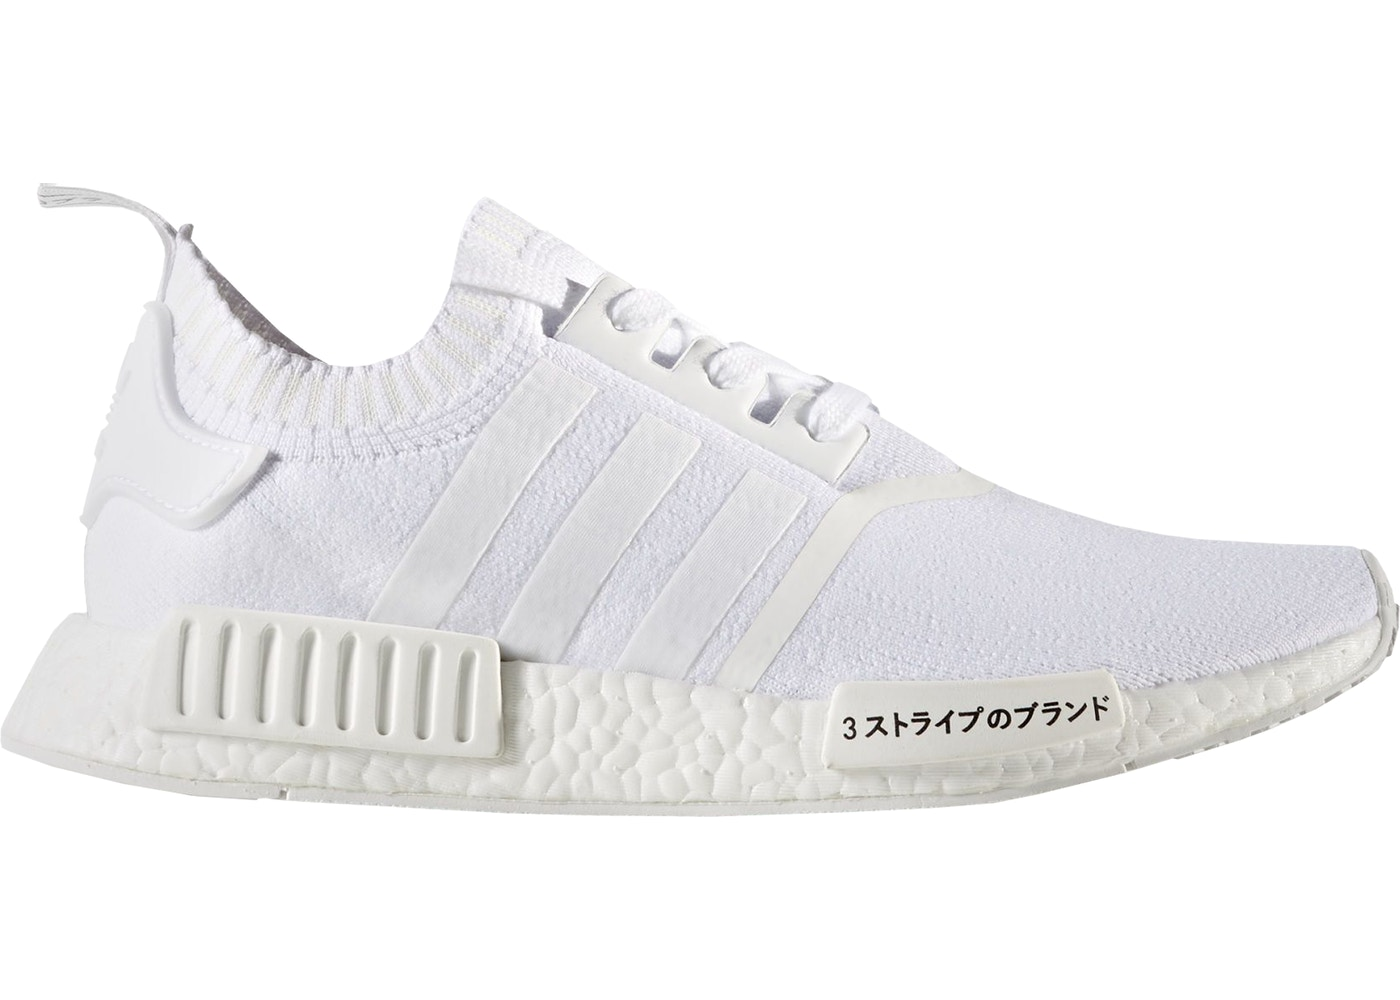 adidas NMD R1 Sneaker In And White nmd1uRQ